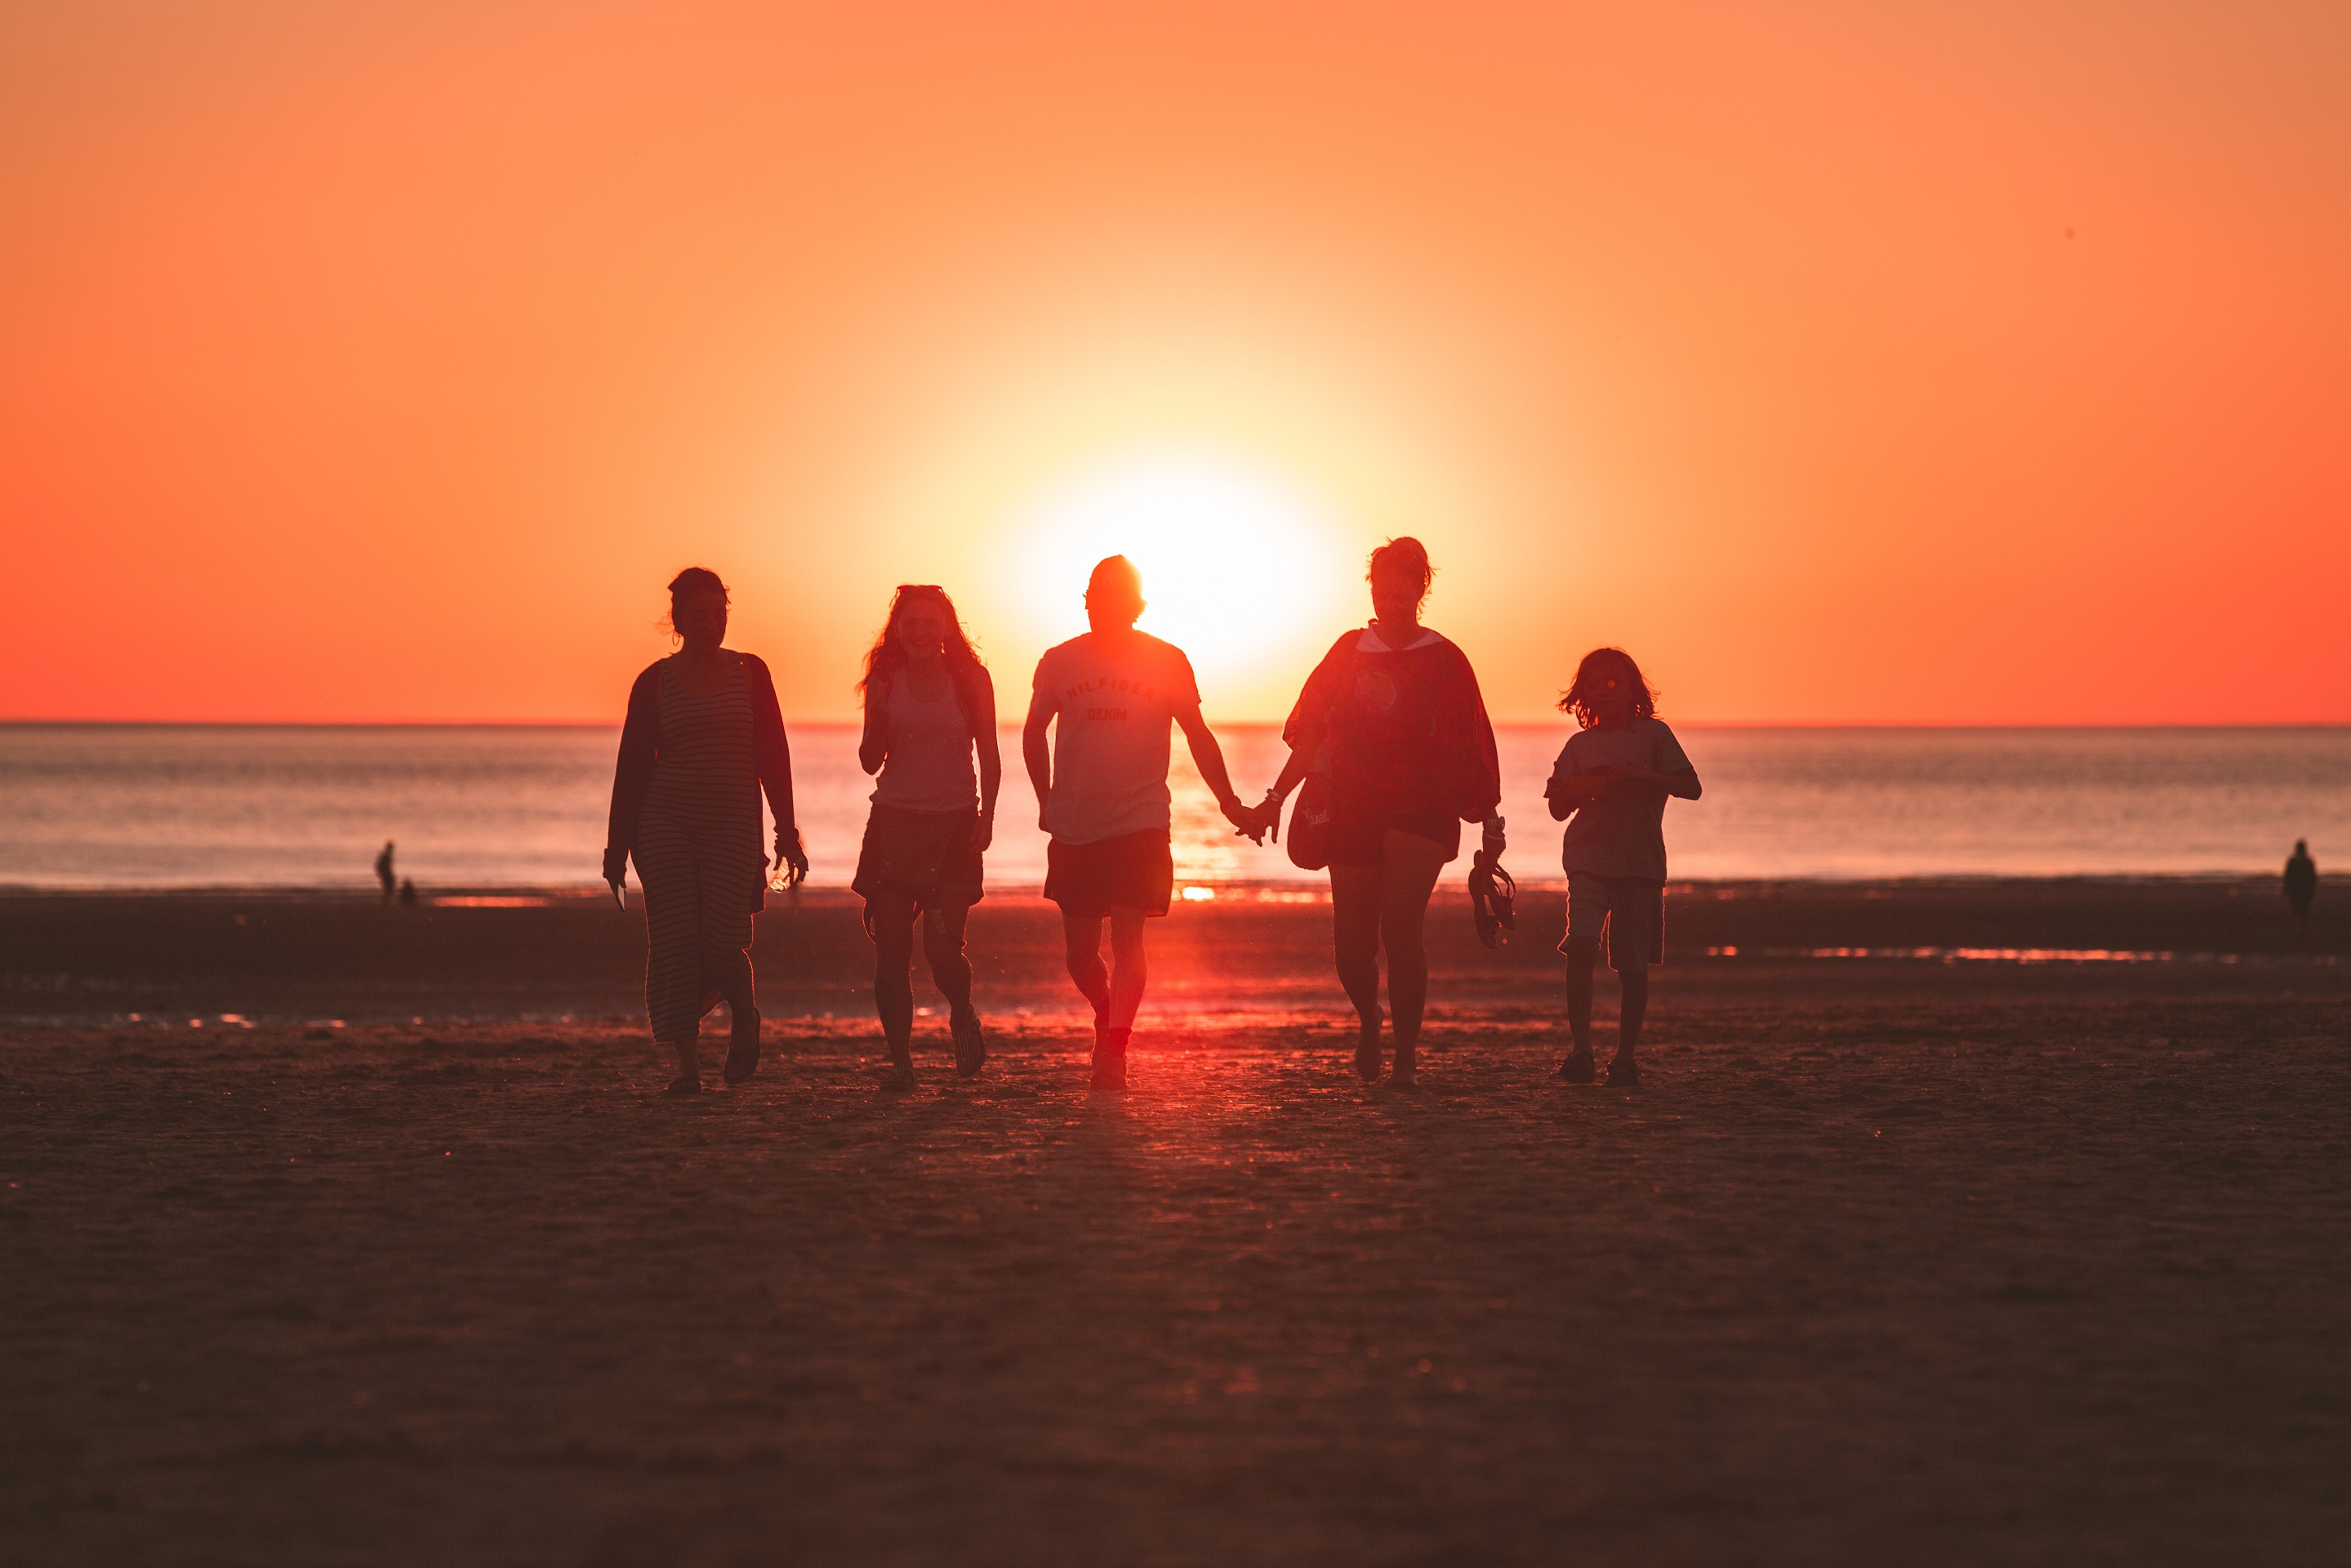 Family of 5 walking on the beach at sunset